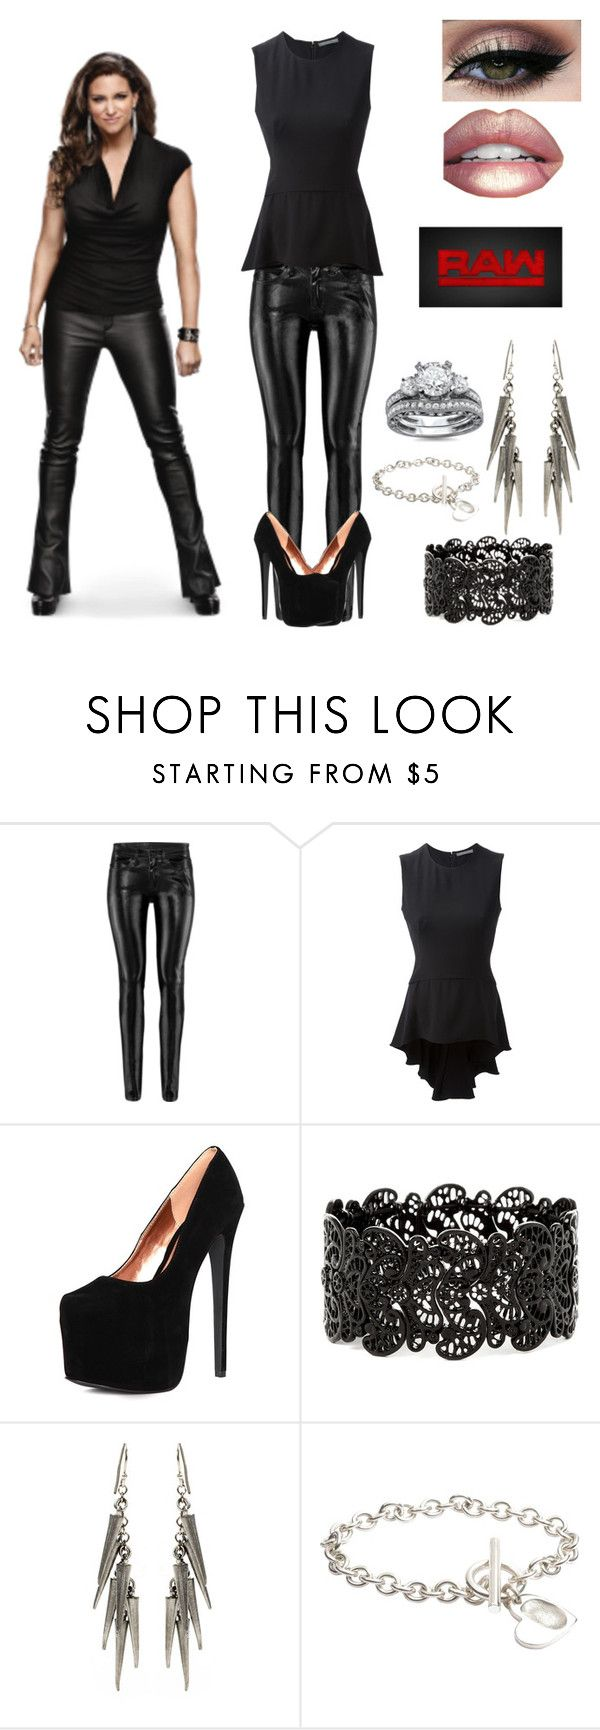 """""""WWE Stephanie McMahon~Raw Commish"""" by queenreigns-916 ❤ liked on Polyvore featuring H&M, Alexander McQueen, Ben-Amun, FingerPrint Jewellry, WWE and Balmi"""